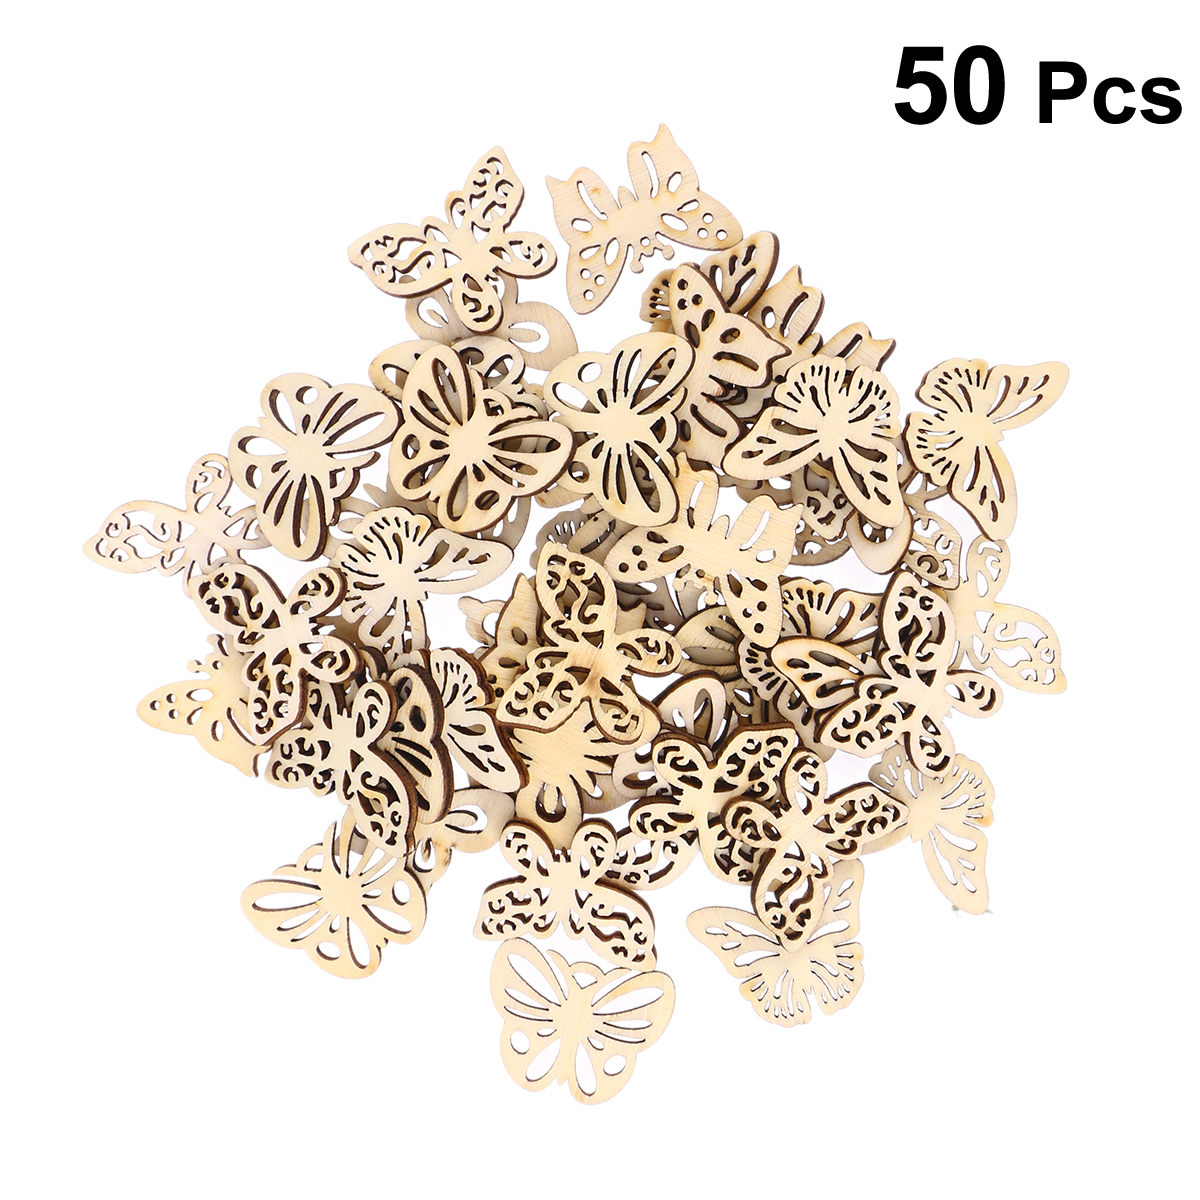 50pcs Mixed DIY Hollow Wooden Butterflies Cutouts Craft Embellishments Wood Ornament For DIY Art Wedding Decoration(33mm)